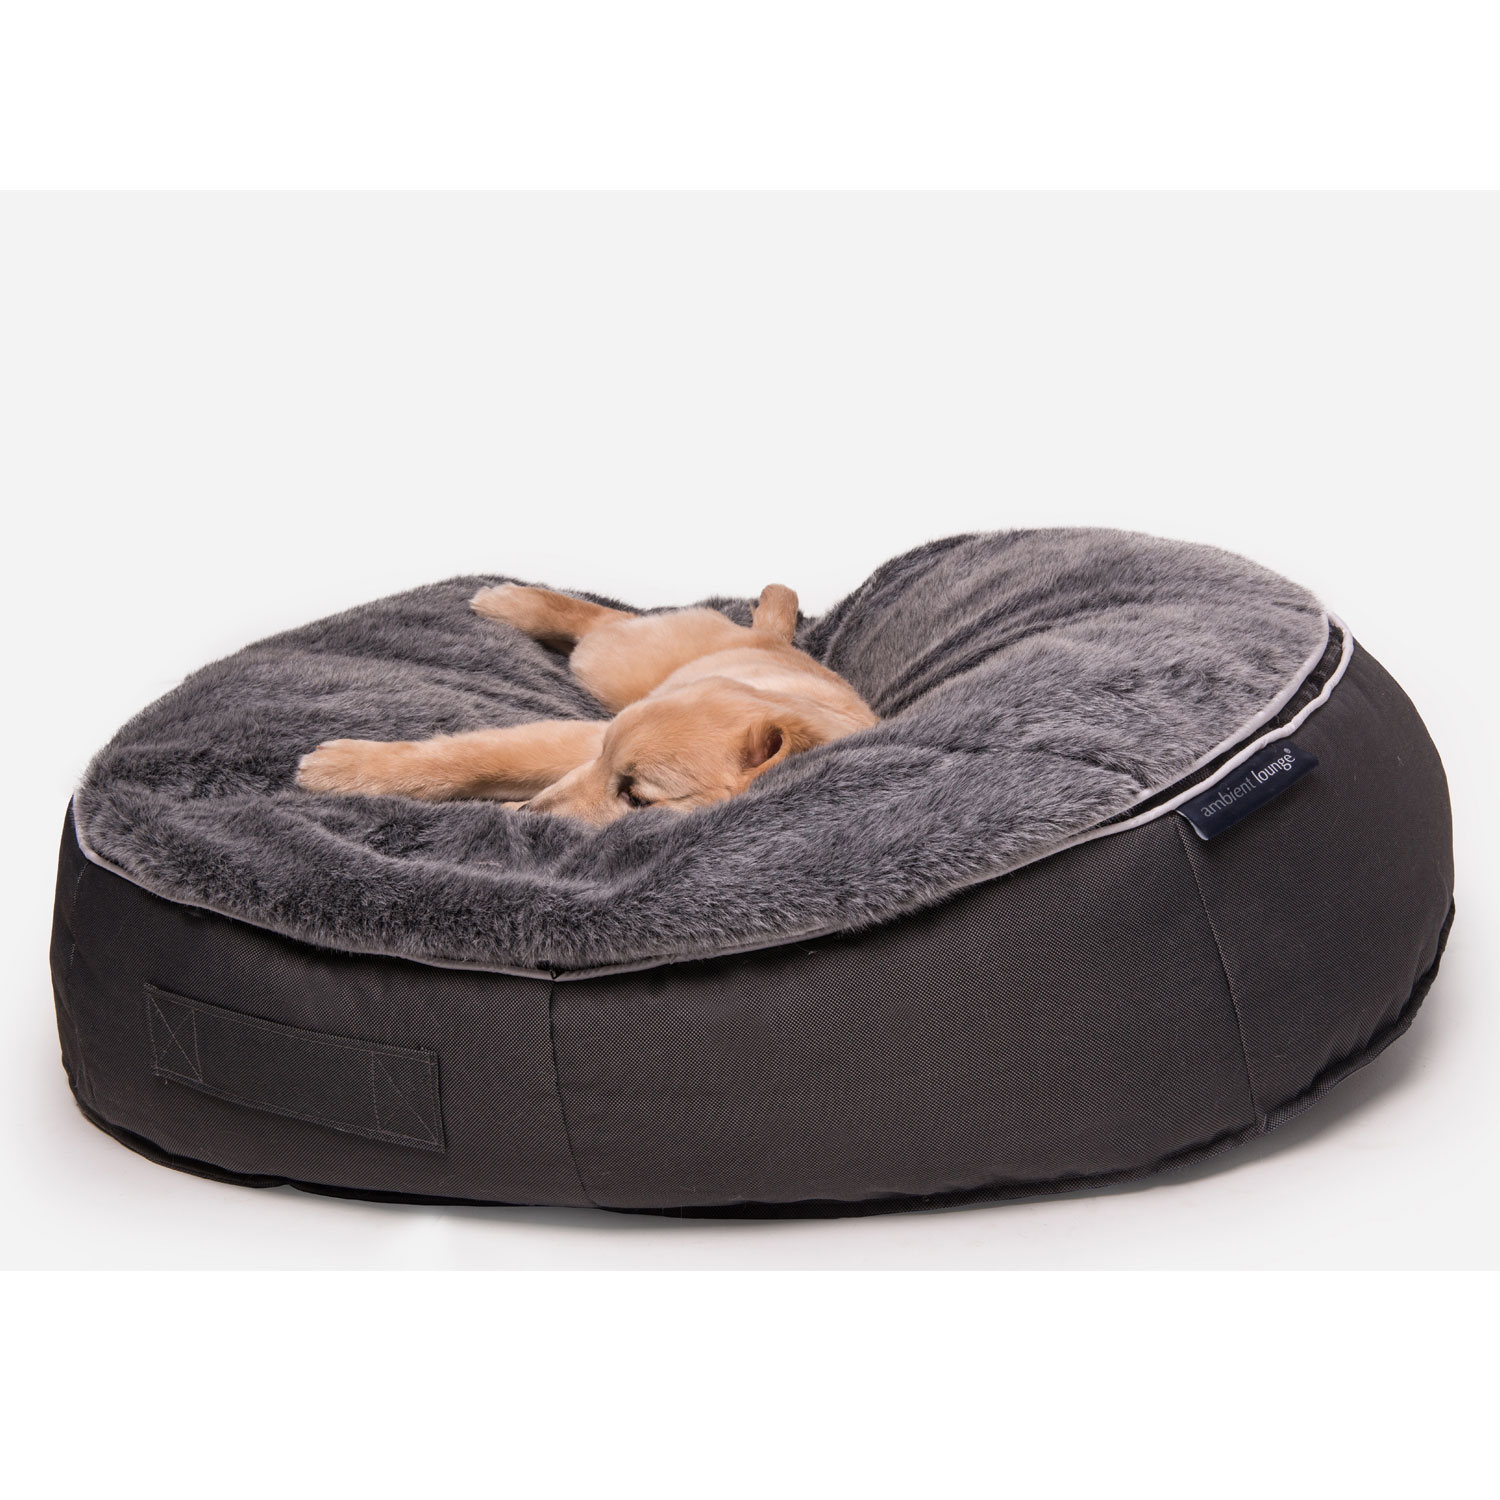 pet beds  dog beds  designer dog bean bags  medium size -  black cushion dog beds made of bean bags by ambient lounge